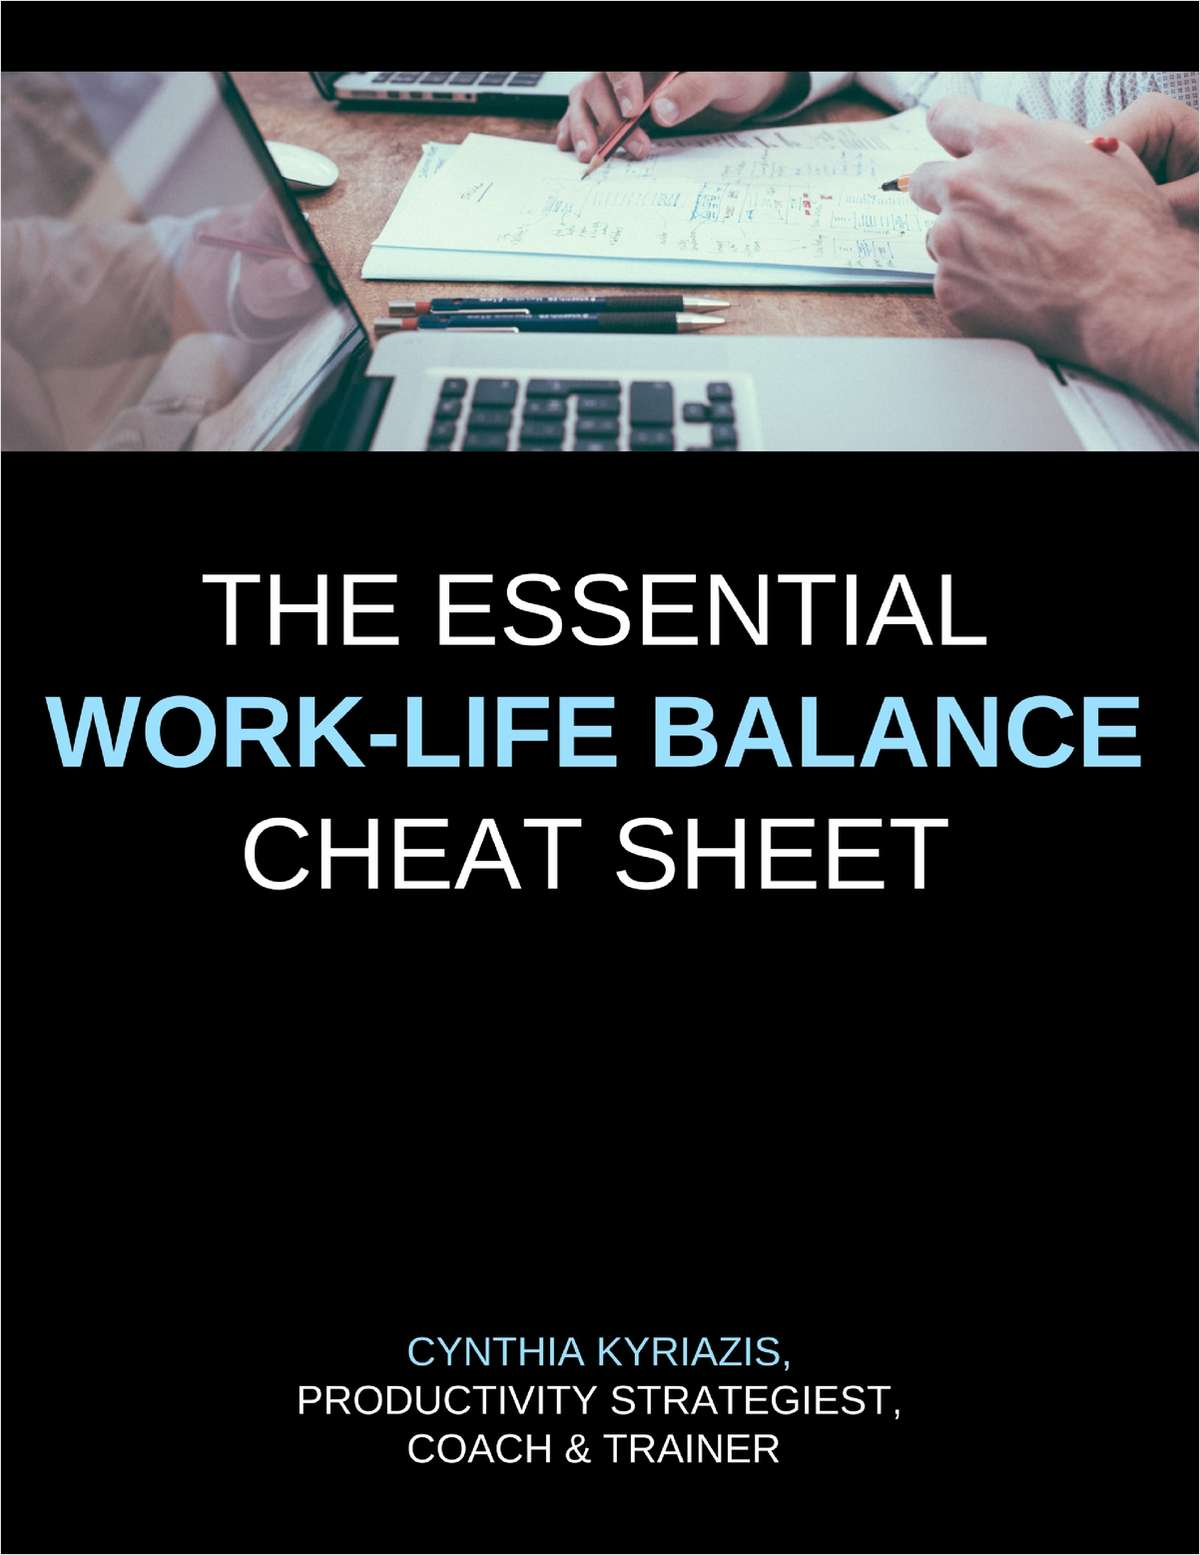 The Essential Work-Life Balance Cheat Sheet